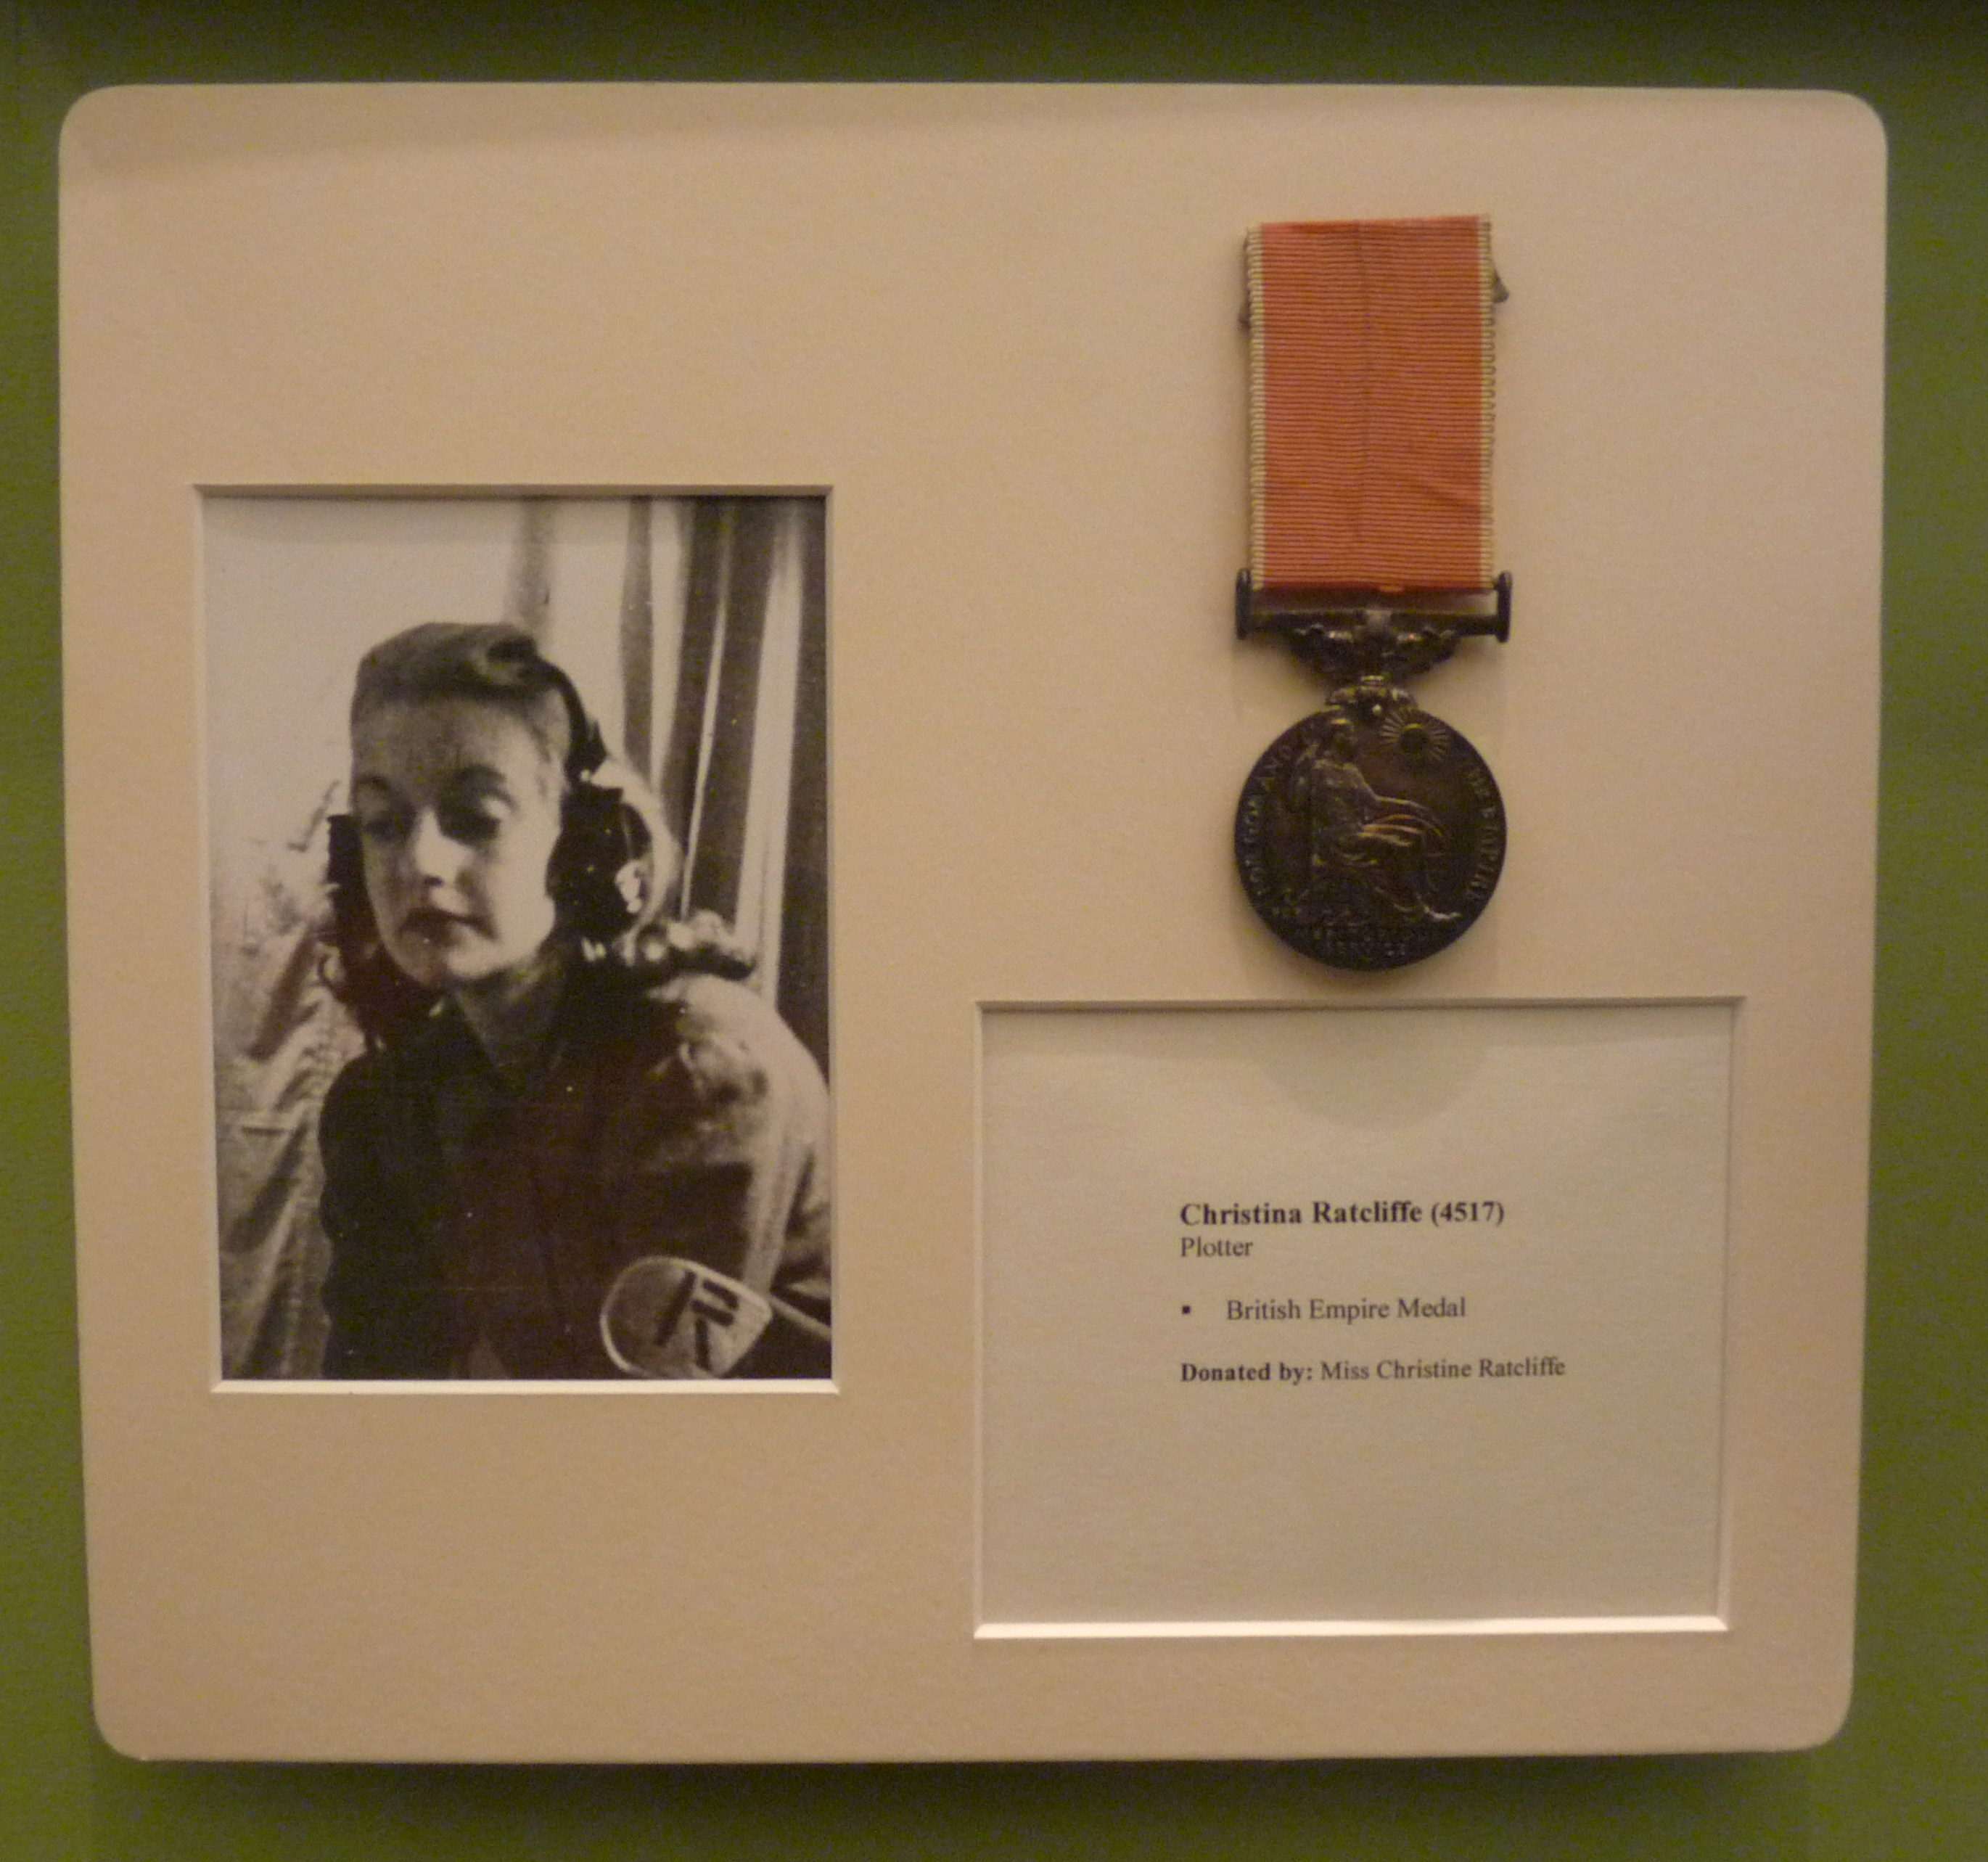 Christina Ratcliffe's British Empire Medal - 1.JPG